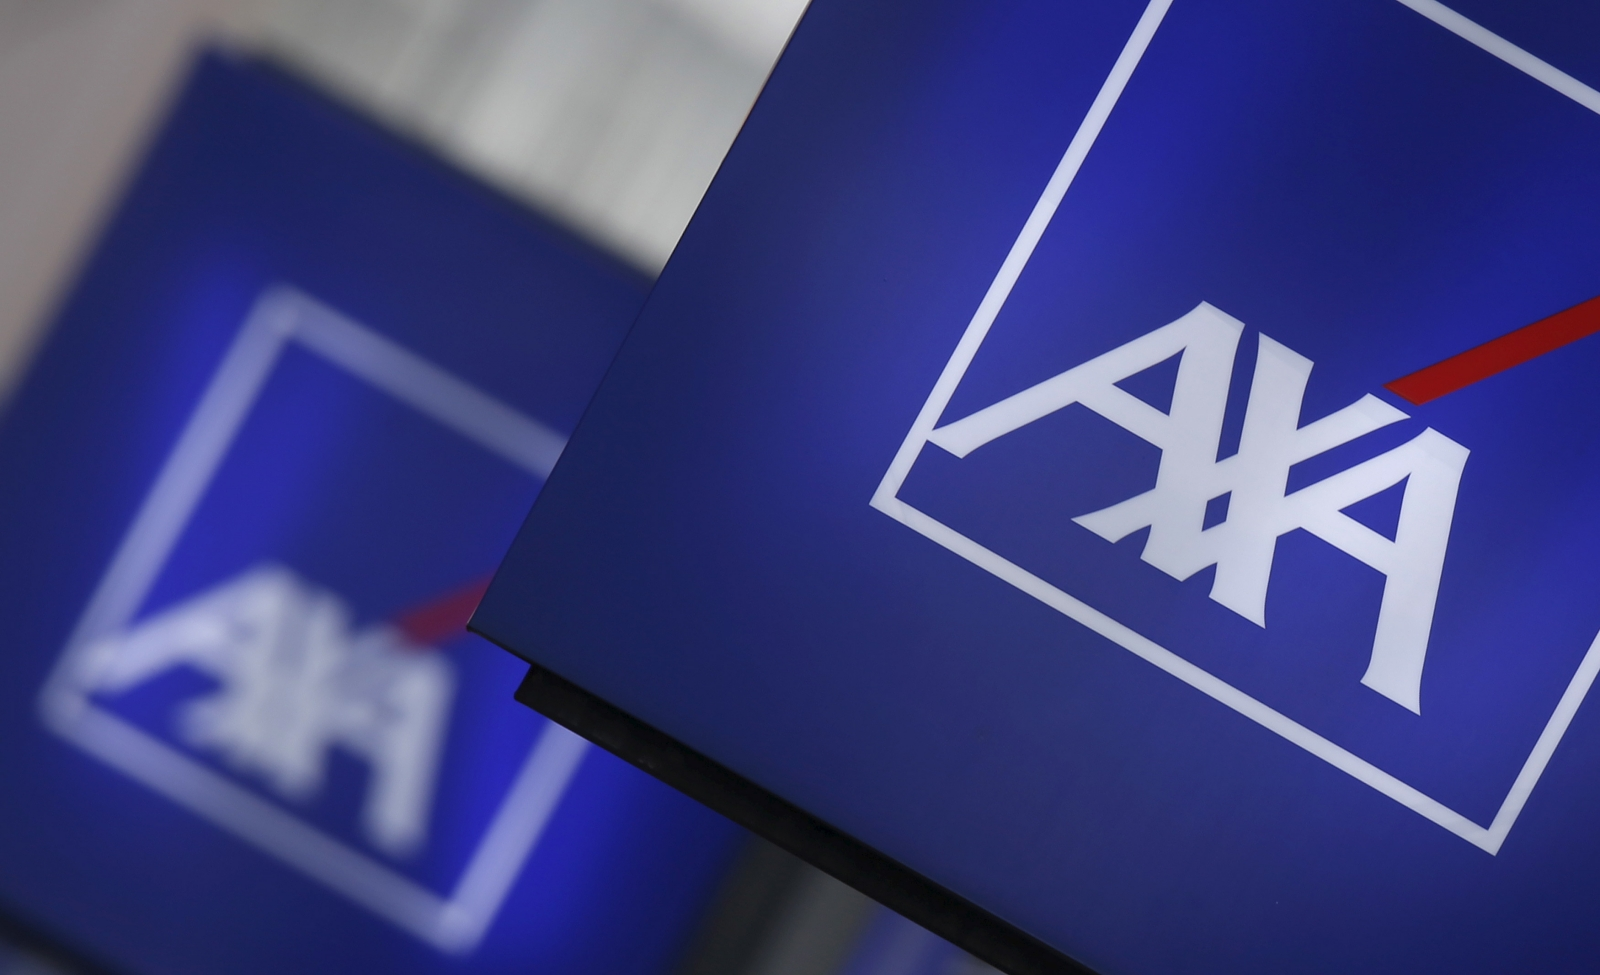 Axa reveals its Ambition 2020 strategy that is focused on both increasing profits and digital transformation